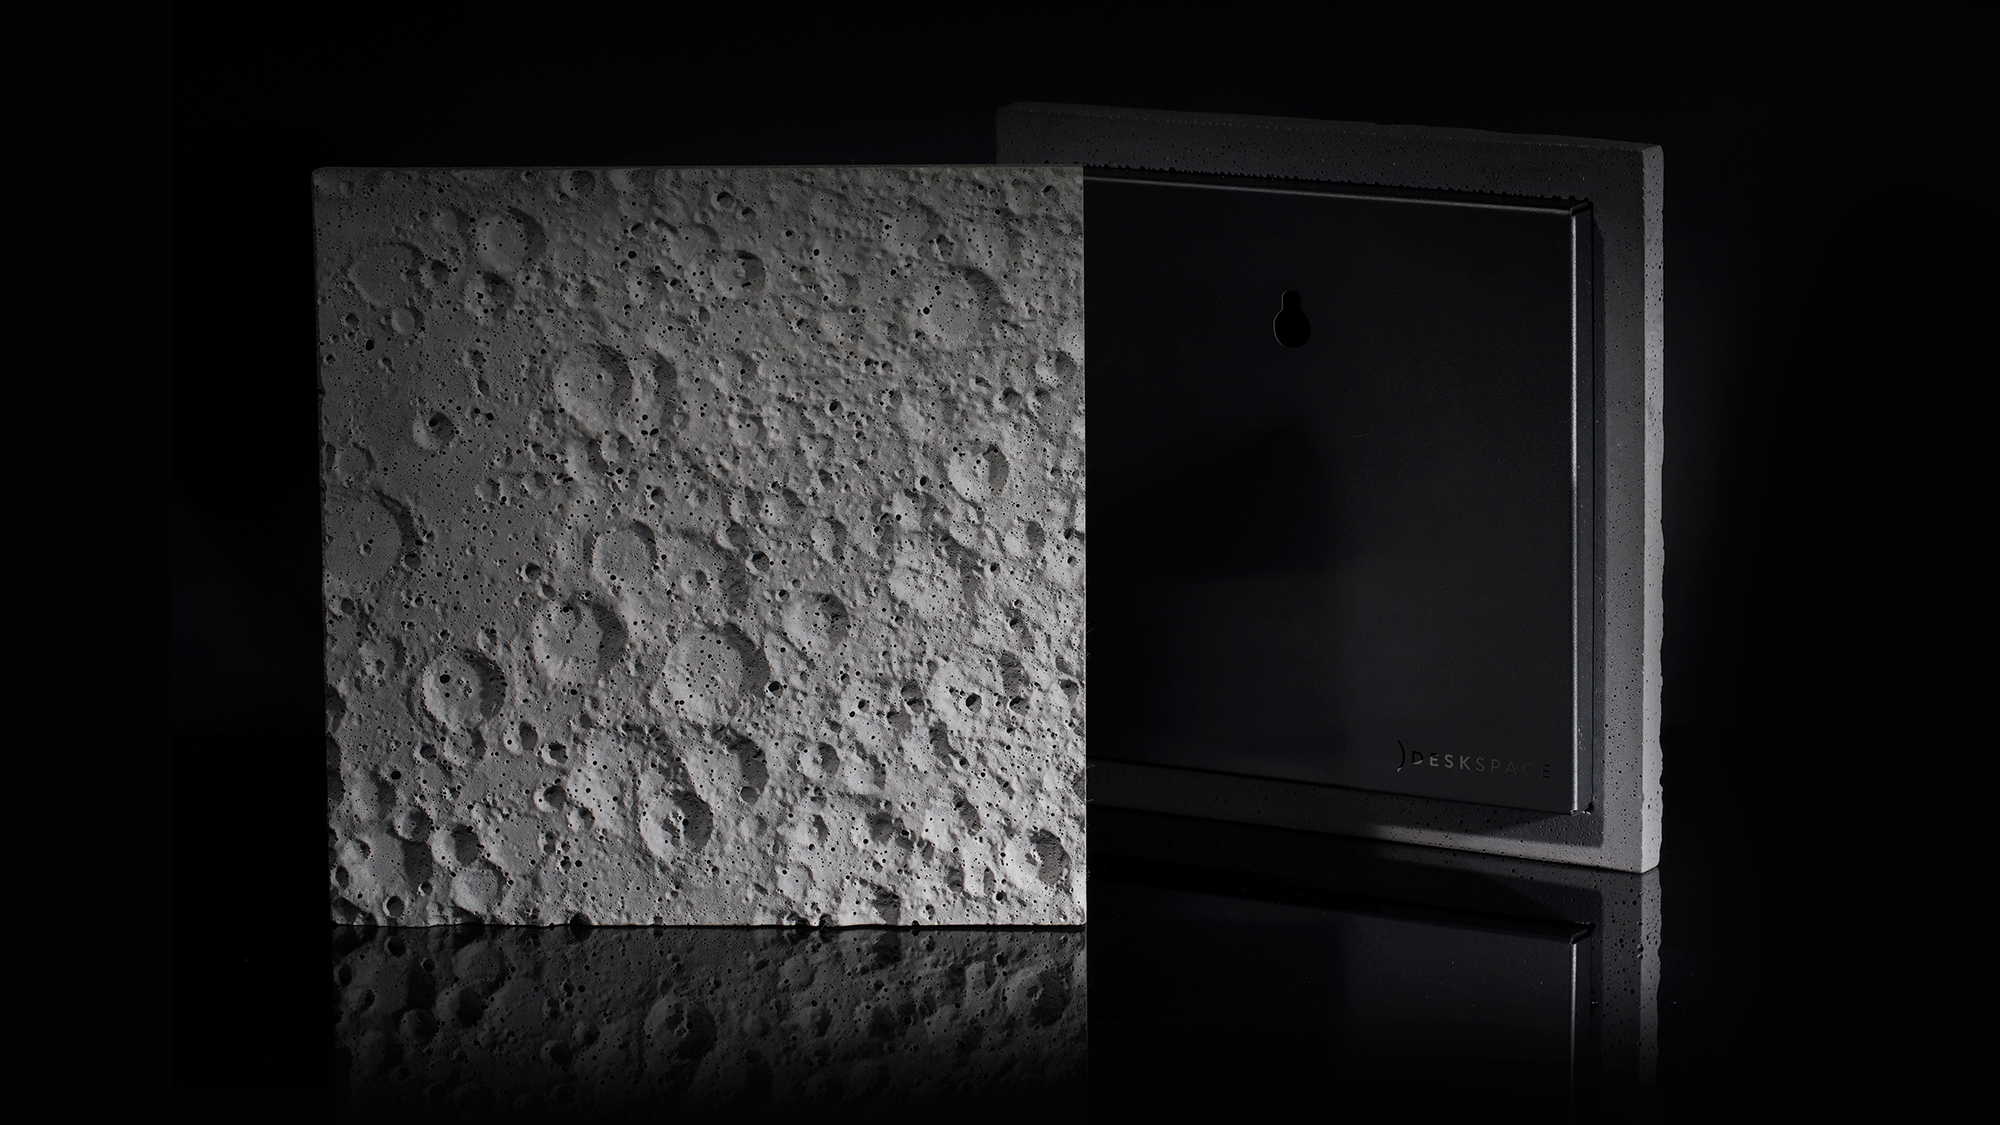 Get a Meteorite-Speckled Slab of the Moon's Surface Made with NASA Data